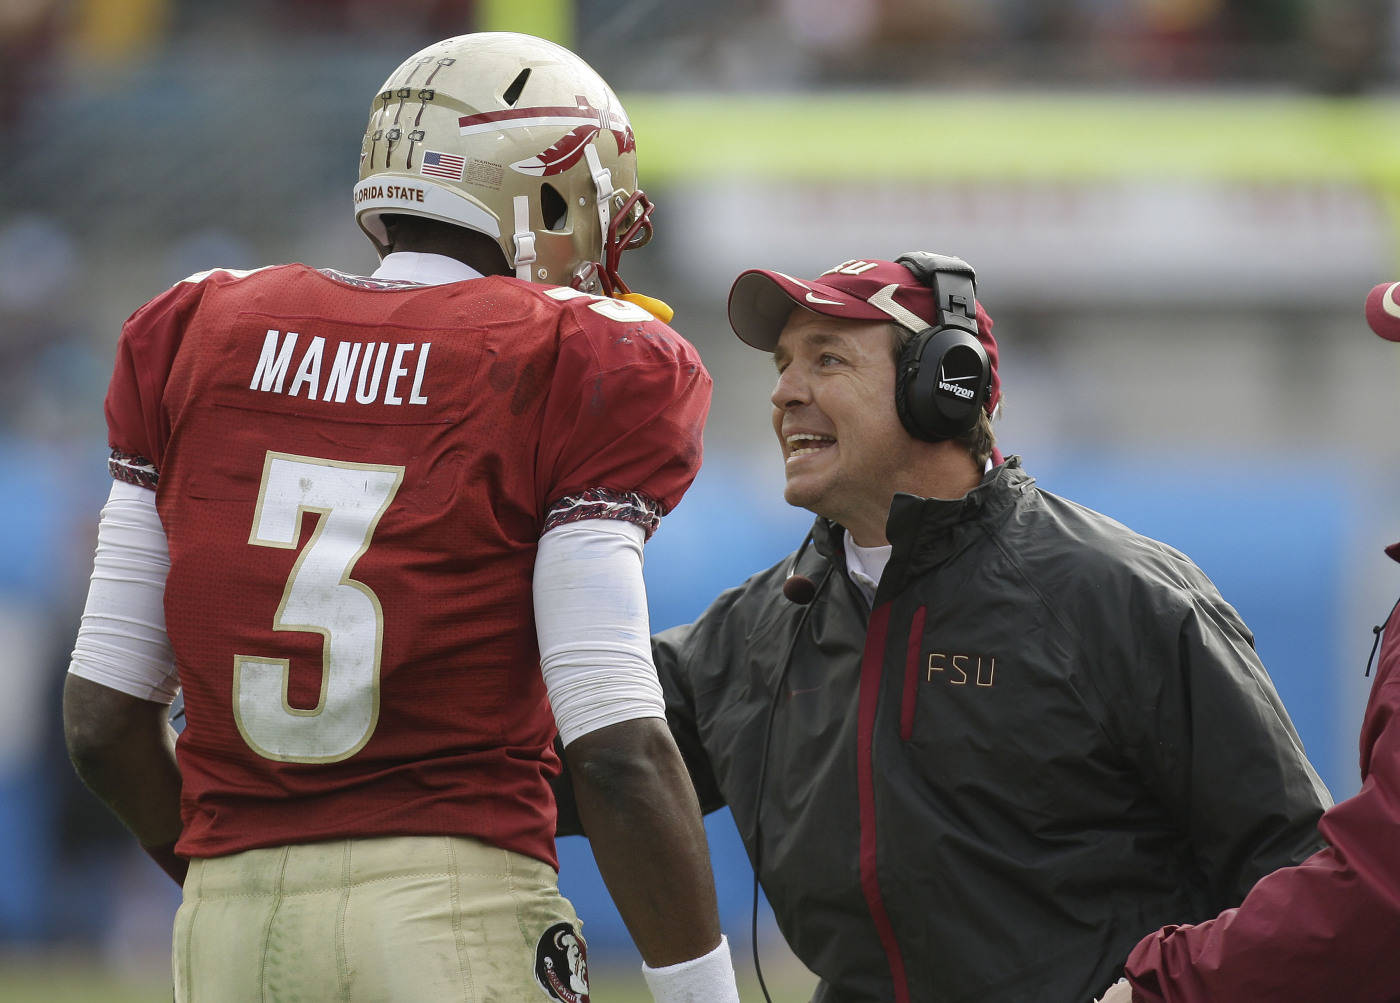 Florida State offensive coordinator Jimbo Fisher, right, talks with Florida State quarterback E.J. Manuel during the second quarter of the Gator Bowl NACAA college football game against West Virginia on Friday, Jan. 1, 2010, in Jacksonville, Fla.  .(AP Photo/Phil Coale)